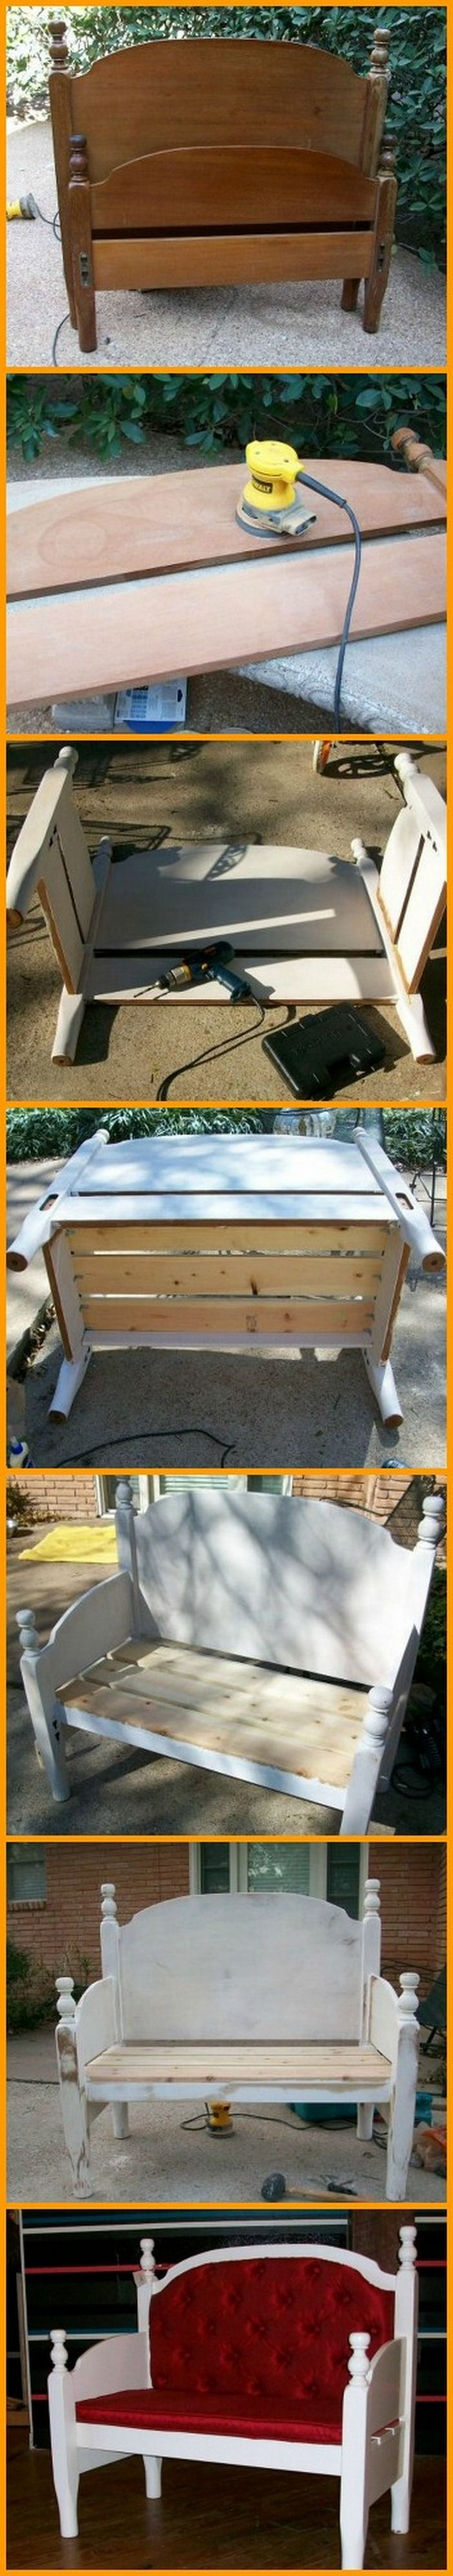 This bench is made from a repurposed headboard and footboard! You can view how it's made in this album here: http://theownerbuildernetwork.co/cxvj Got an old bed frame that has seen better days?